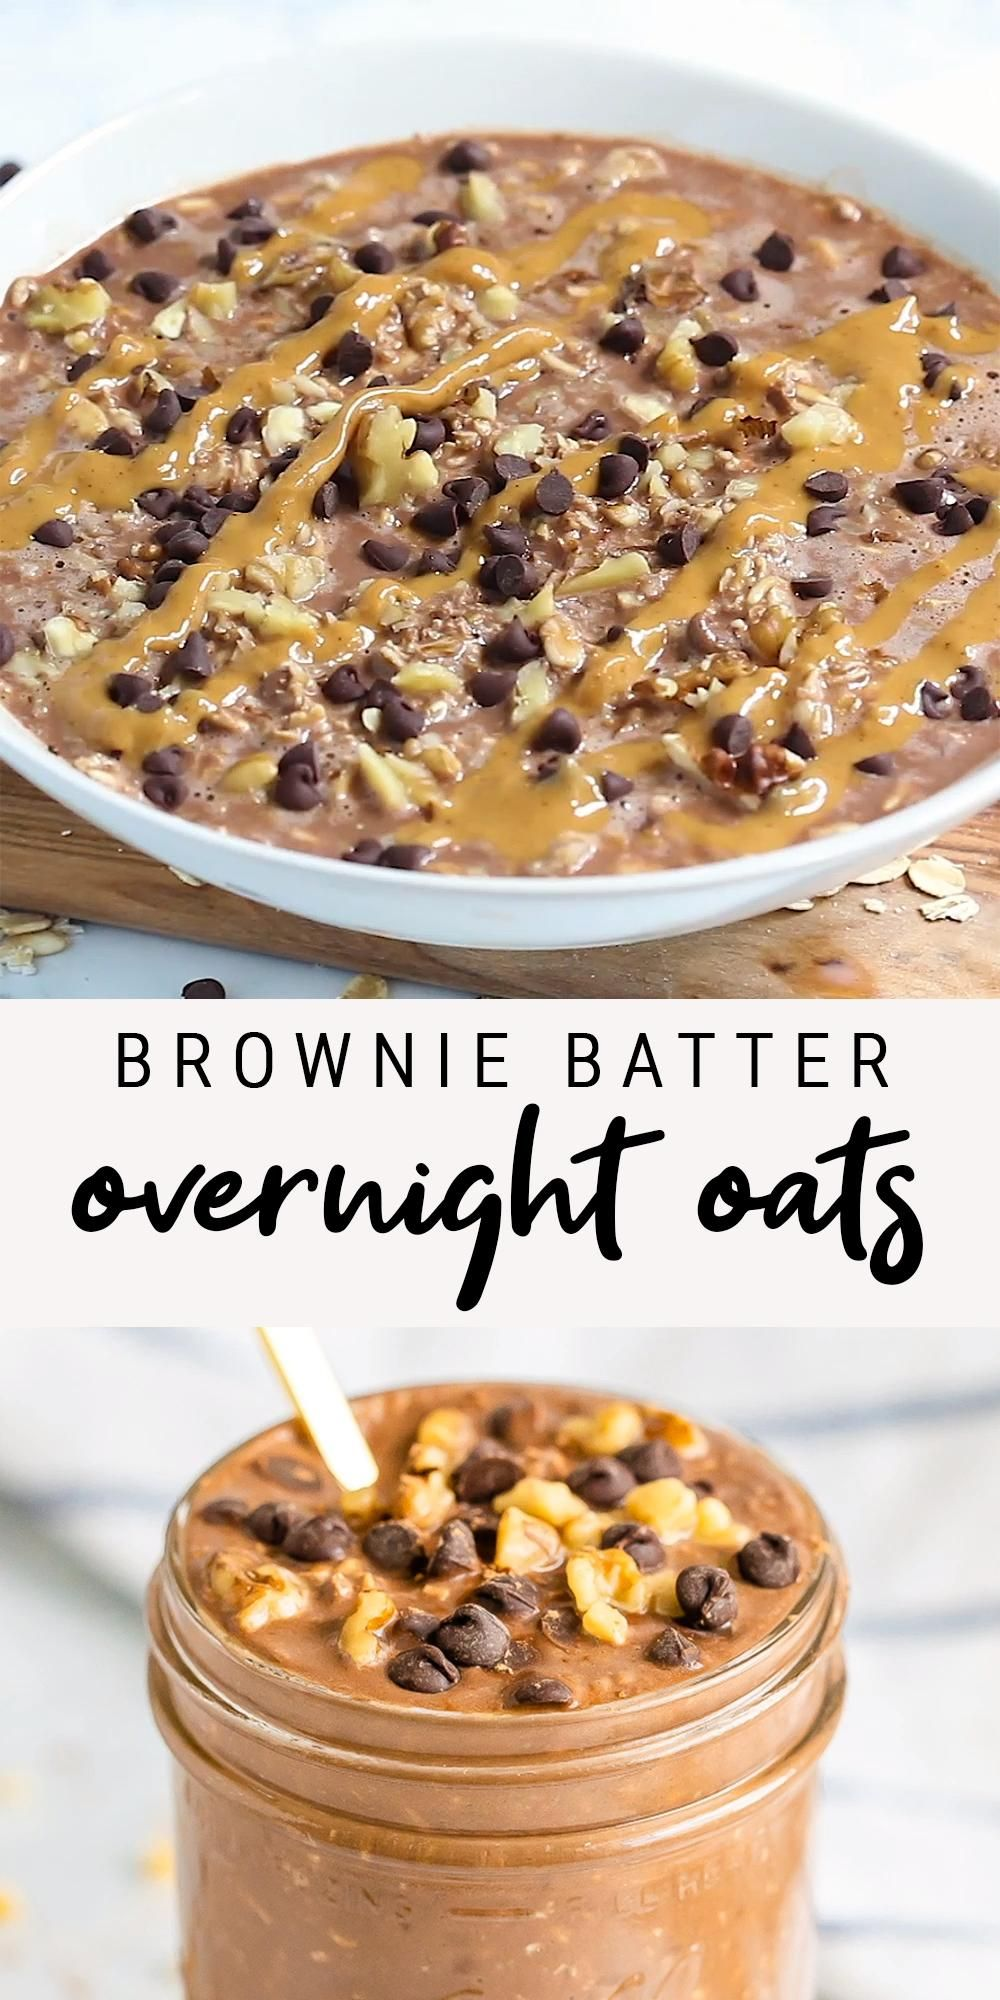 Healthy Brownie Batter Overnight Oats